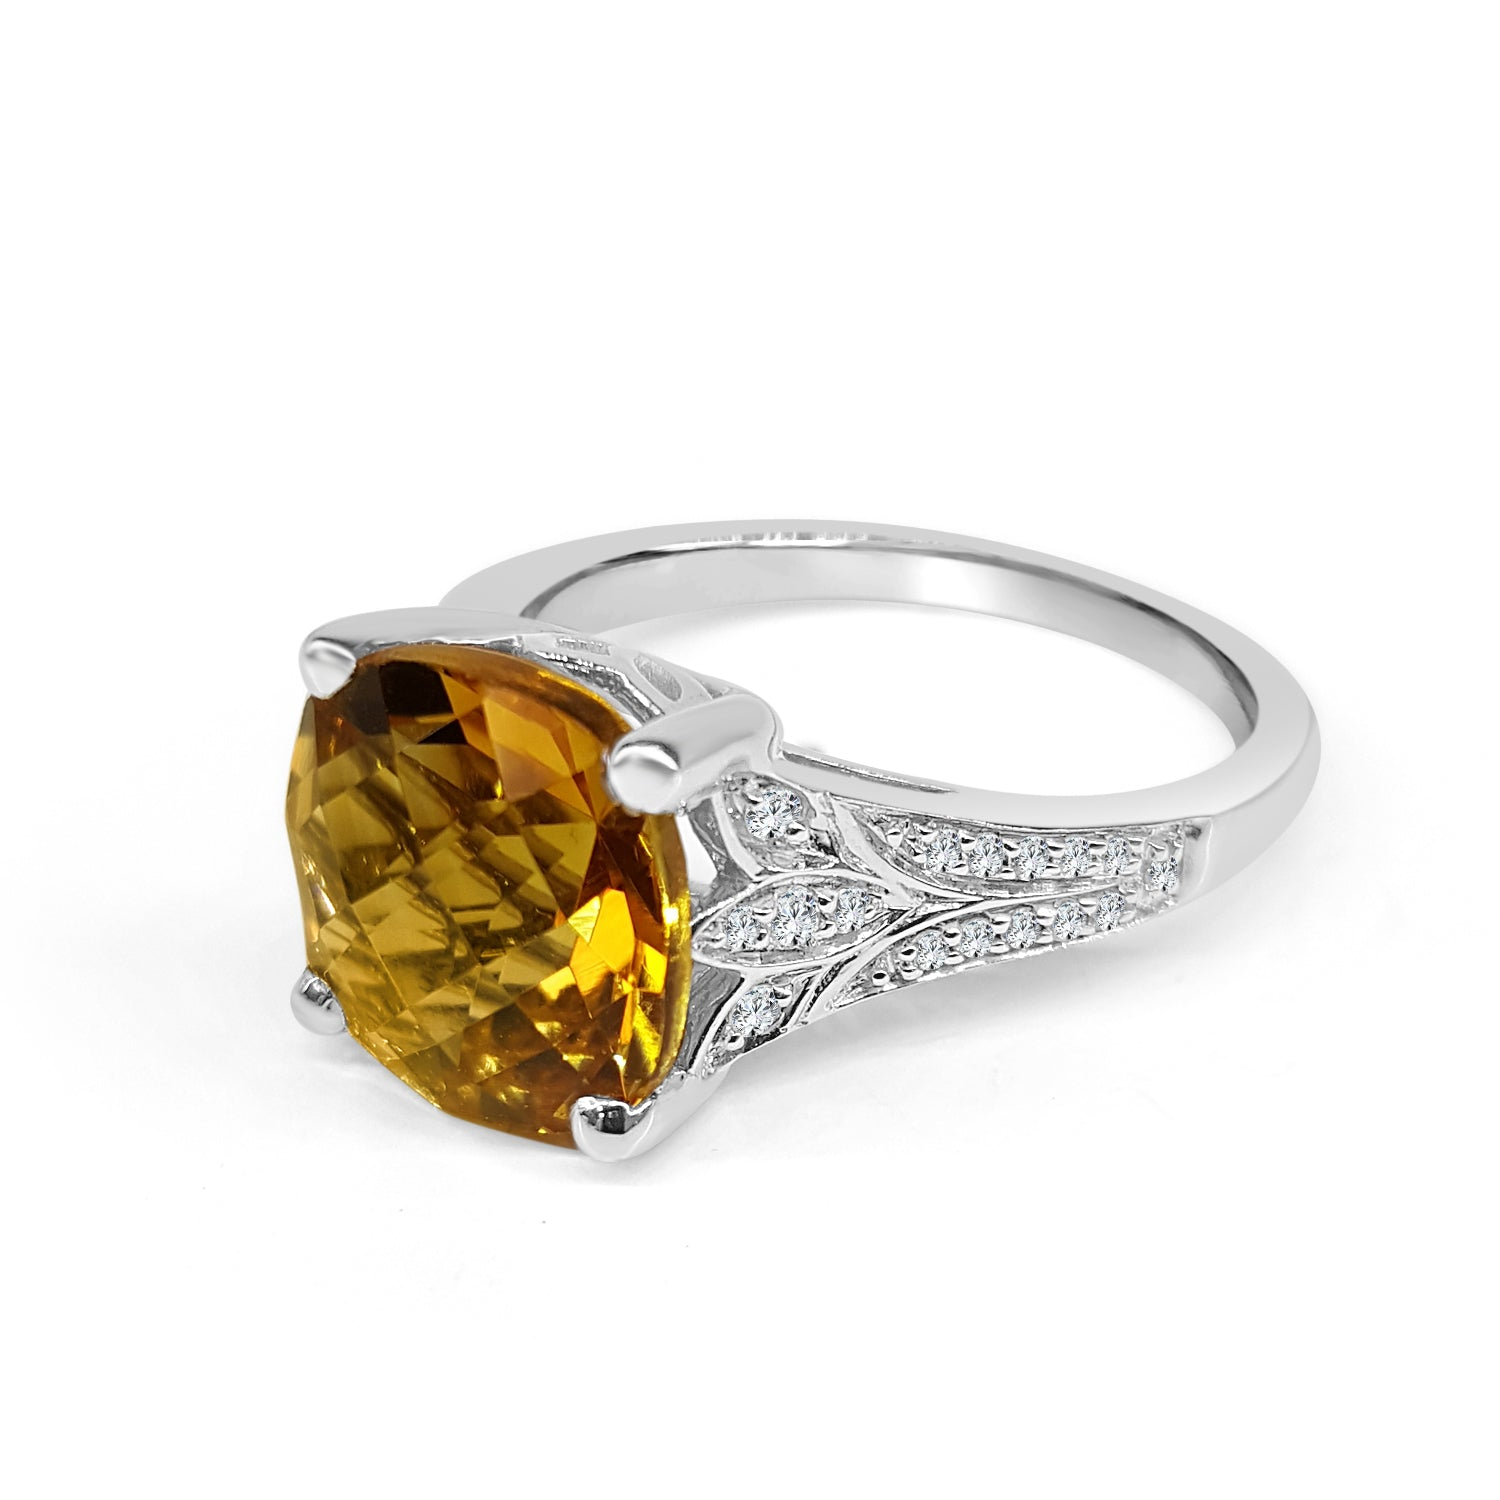 Cushion Shaped Citrine Ring With Vintage Side Detail